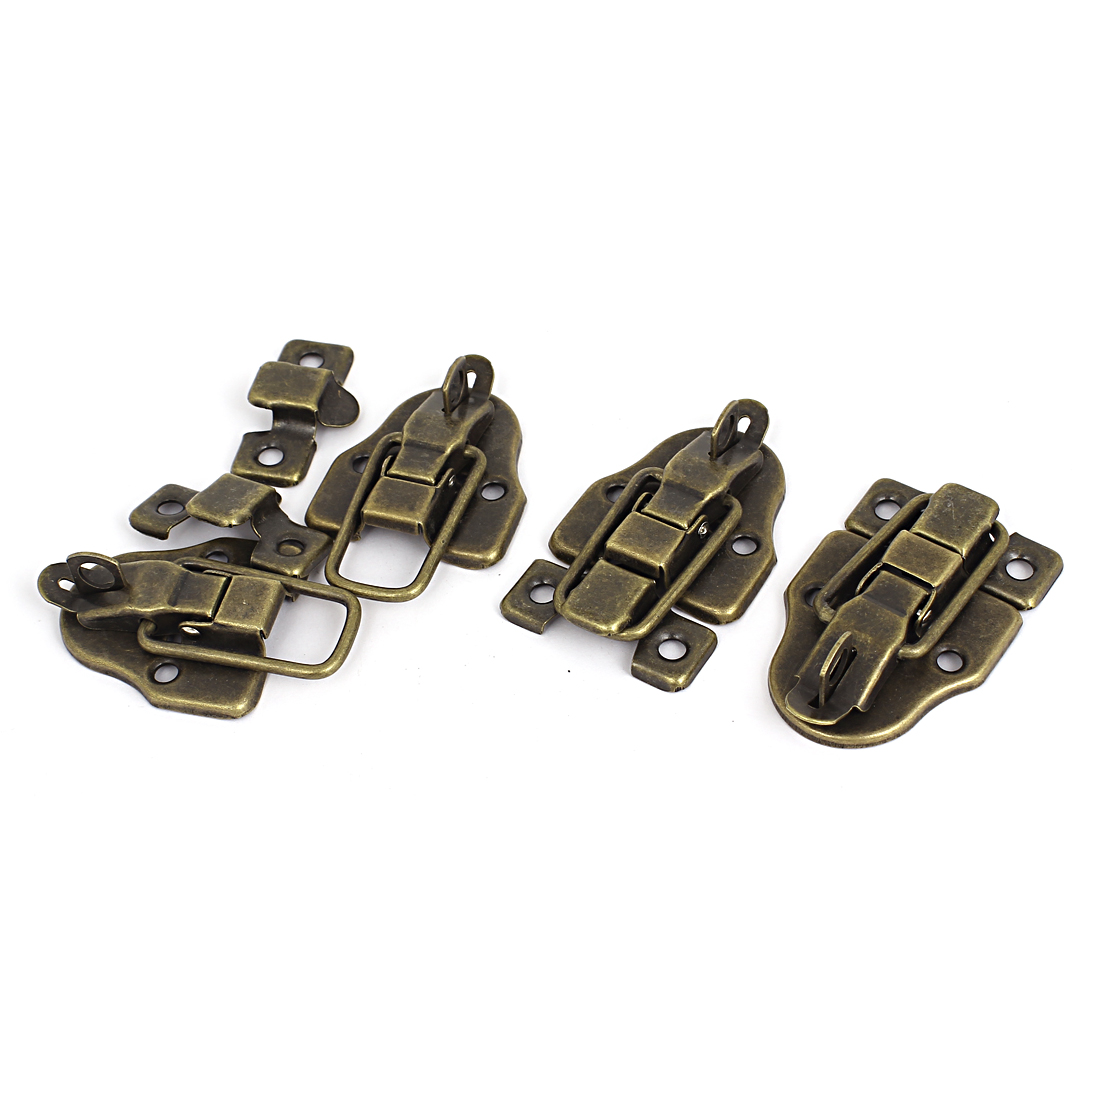 Boxes Duckbilled Metal Toggle Latch Catch Hasp Bronze Tone 4PCS